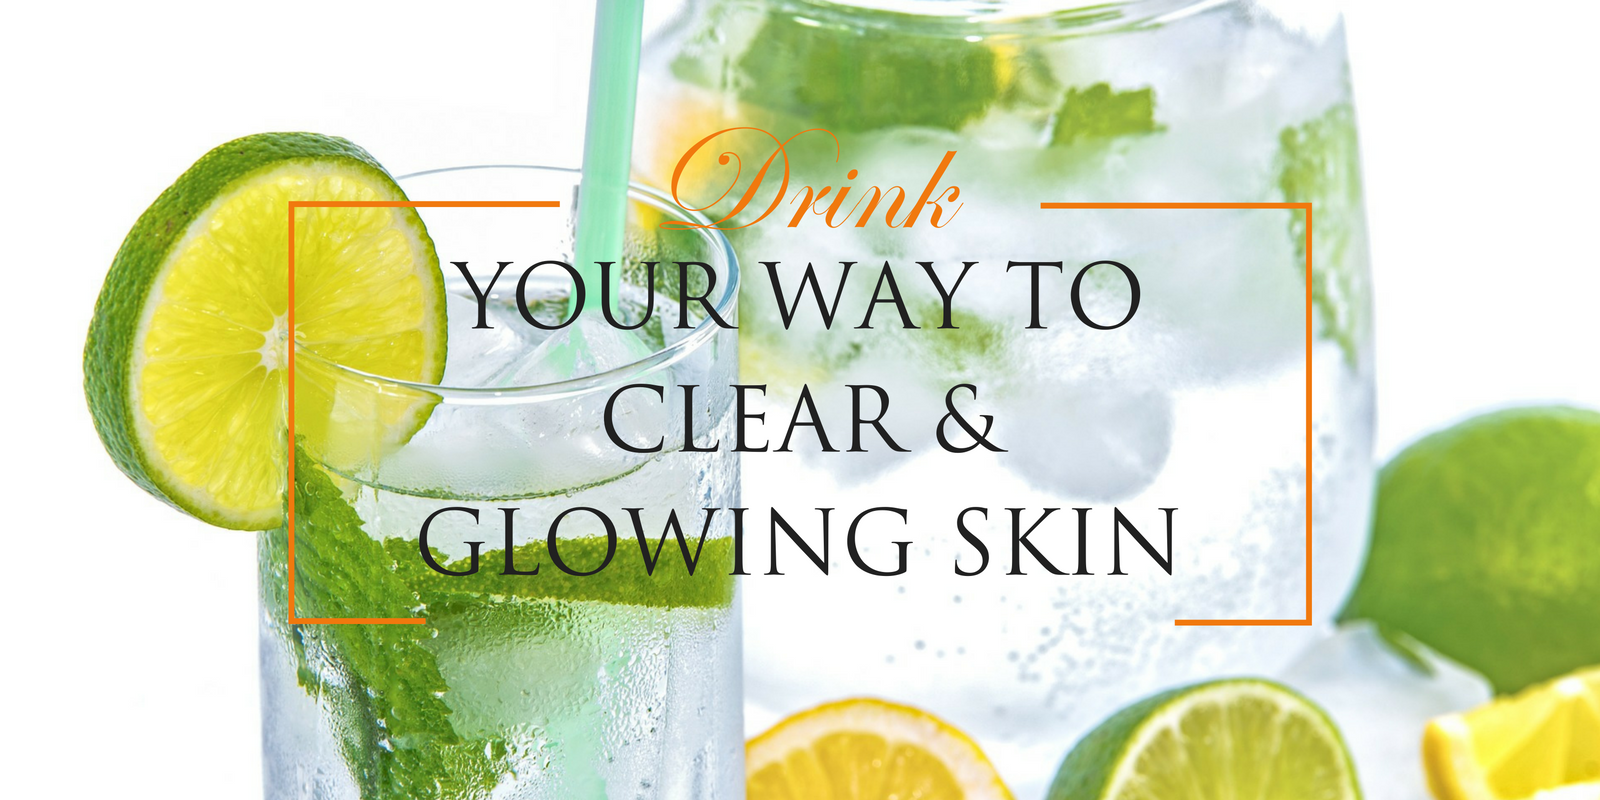 Detox Water: Drink Your Way to Clear Glowing Skin